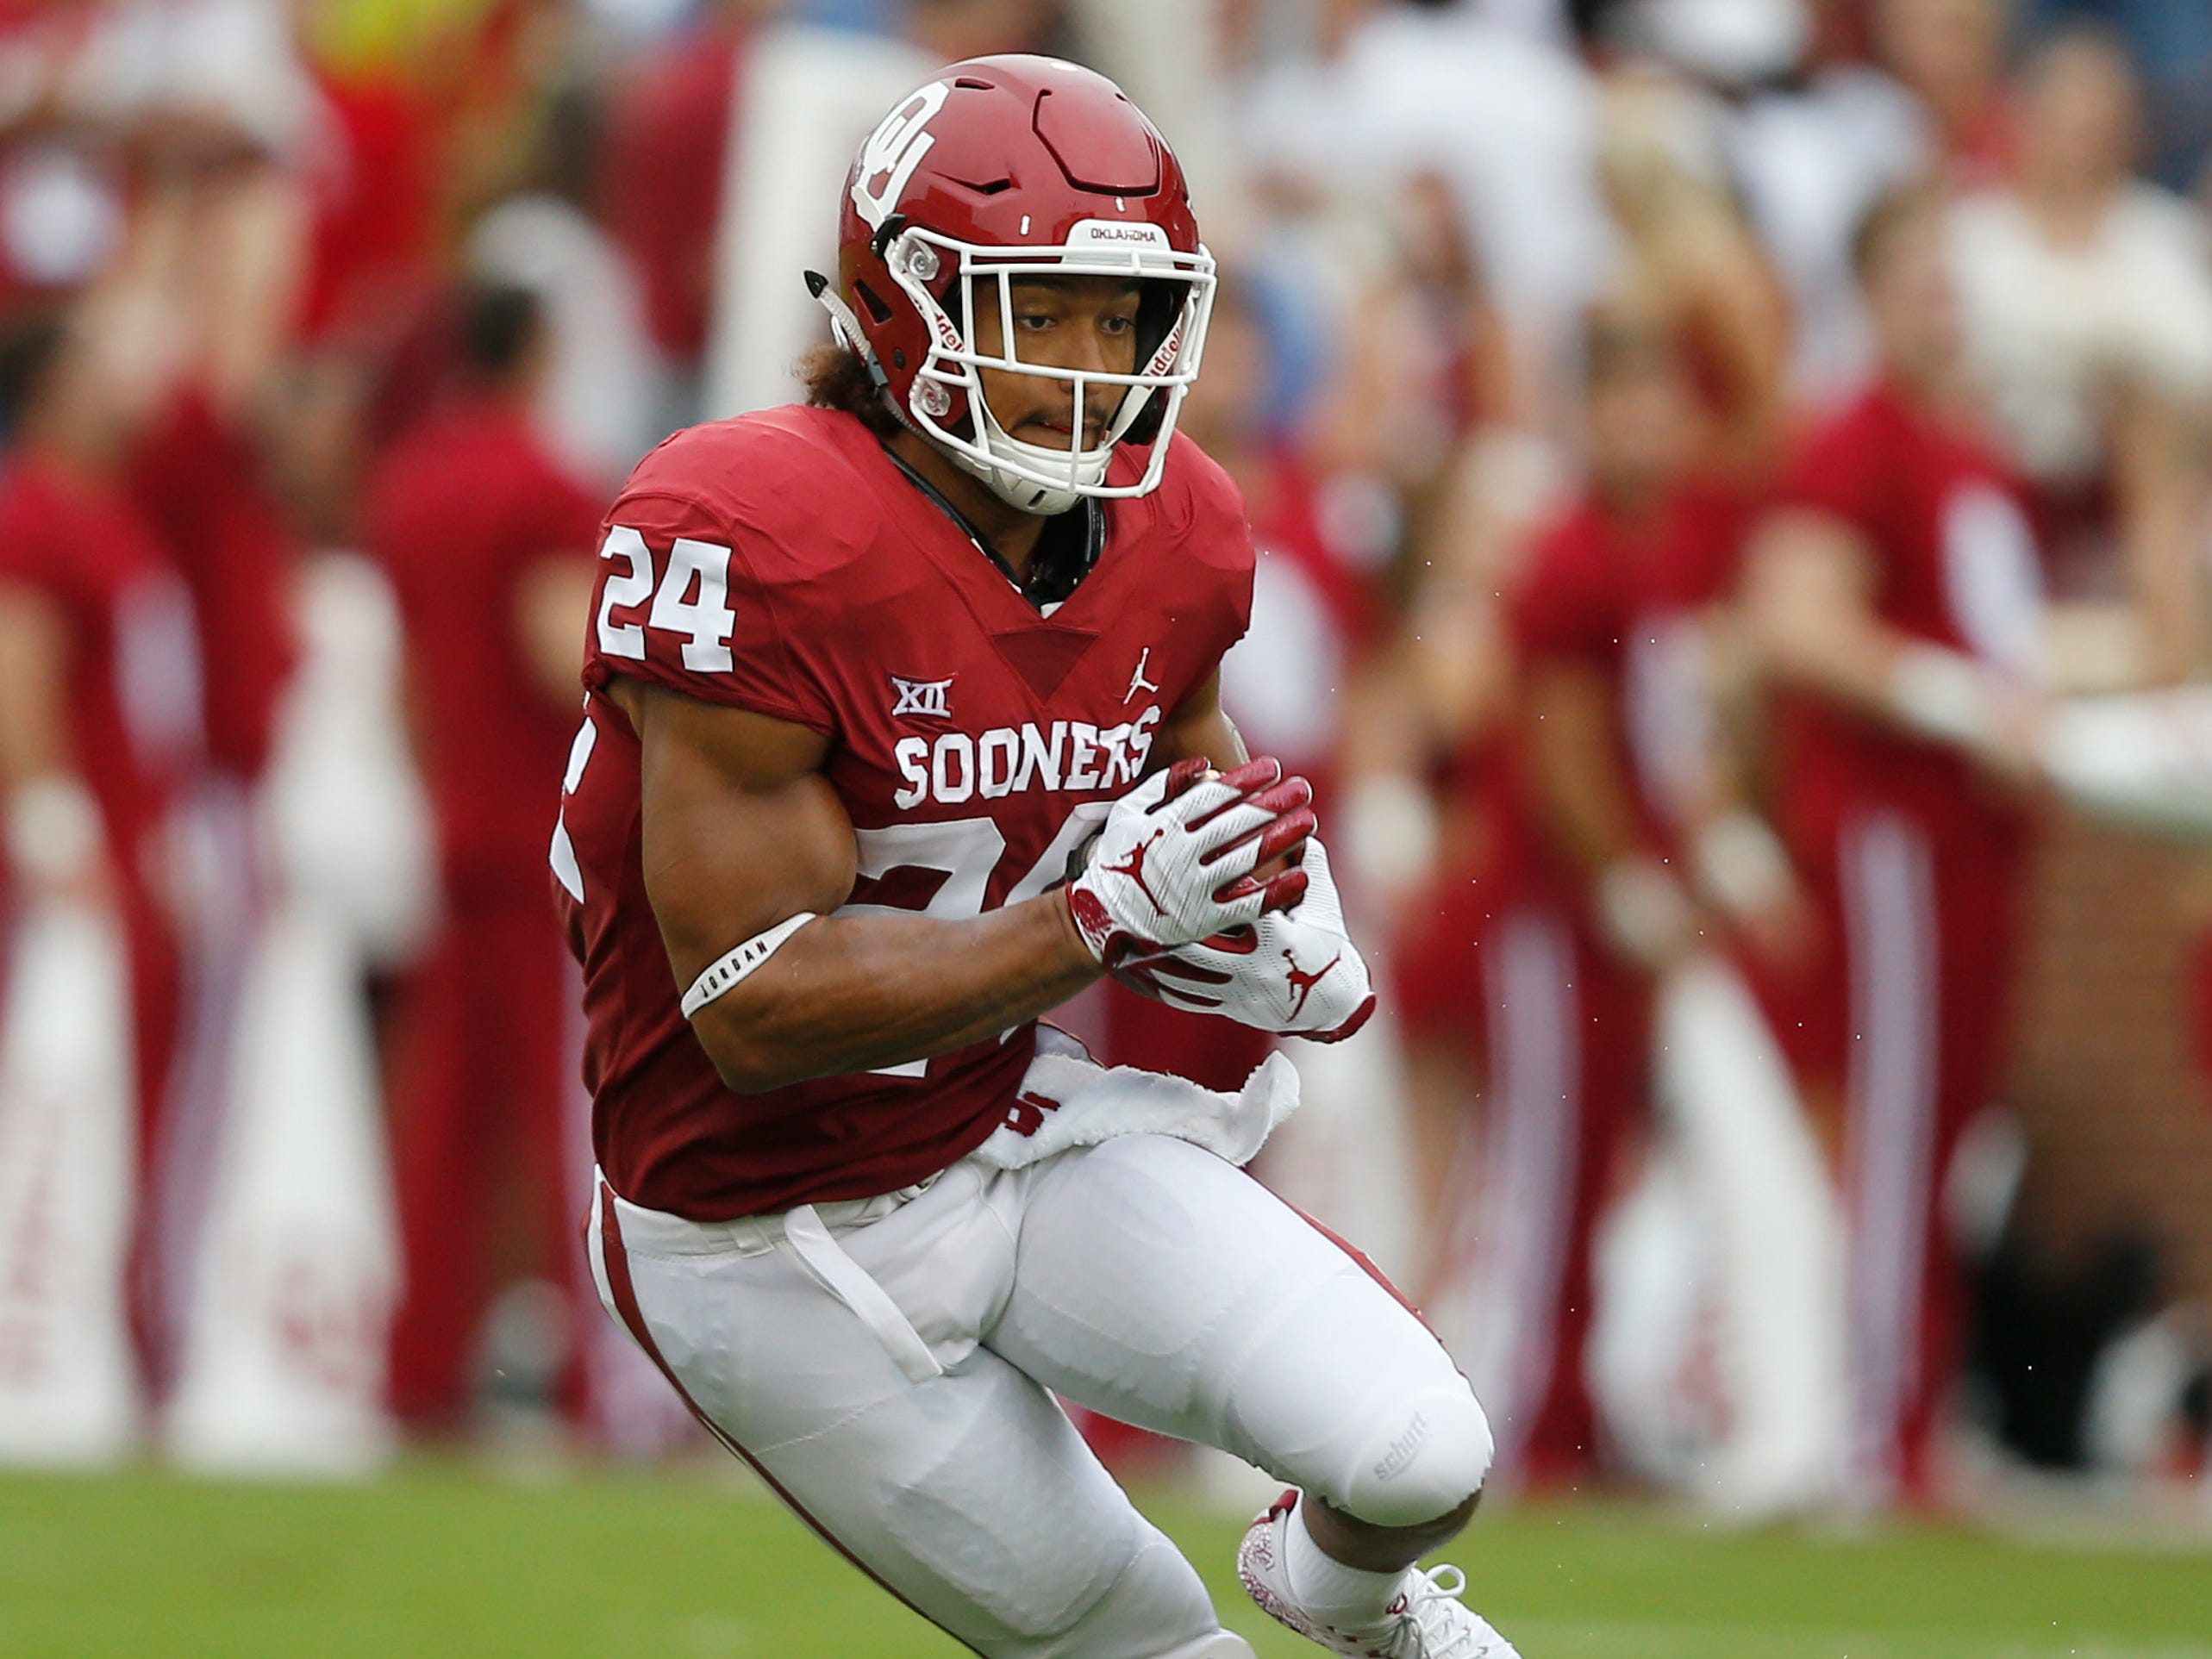 50. Rodney Anderson, RB, Oklahoma: Anderson missed much of this season with a knee injury, but he has enough tape to know what you're going to get in the 6-foot-1, 220-pounder. He runs with a good combination and power and balance, but with the patience of a more experienced rusher. The biggest concern would be his versatility, given limited receiving production and questionable pass-blocking skills.